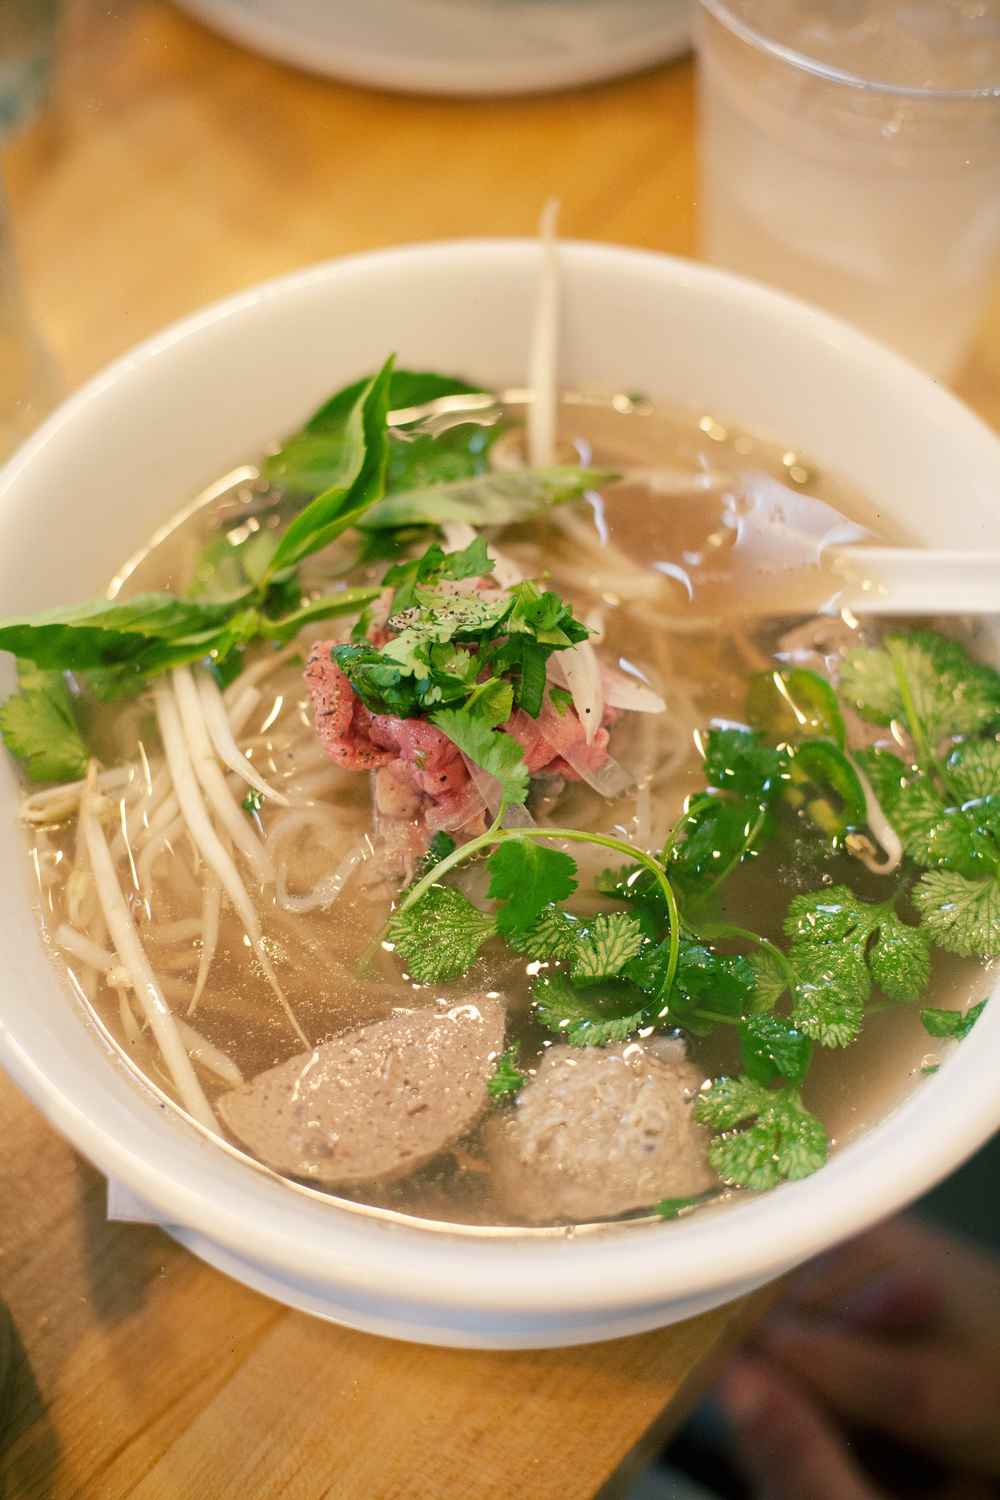 Located at the Findlay Market, this Vietnamese restaurant offers a variety of vegetarian and vegan dishes full of flavor with outdoor seating where you can enjoy your meal amidst the activity of the market. Flavorful, fresh and reasonably priced. Featured here is the soup Pho Bo Tai + Bo Vien.